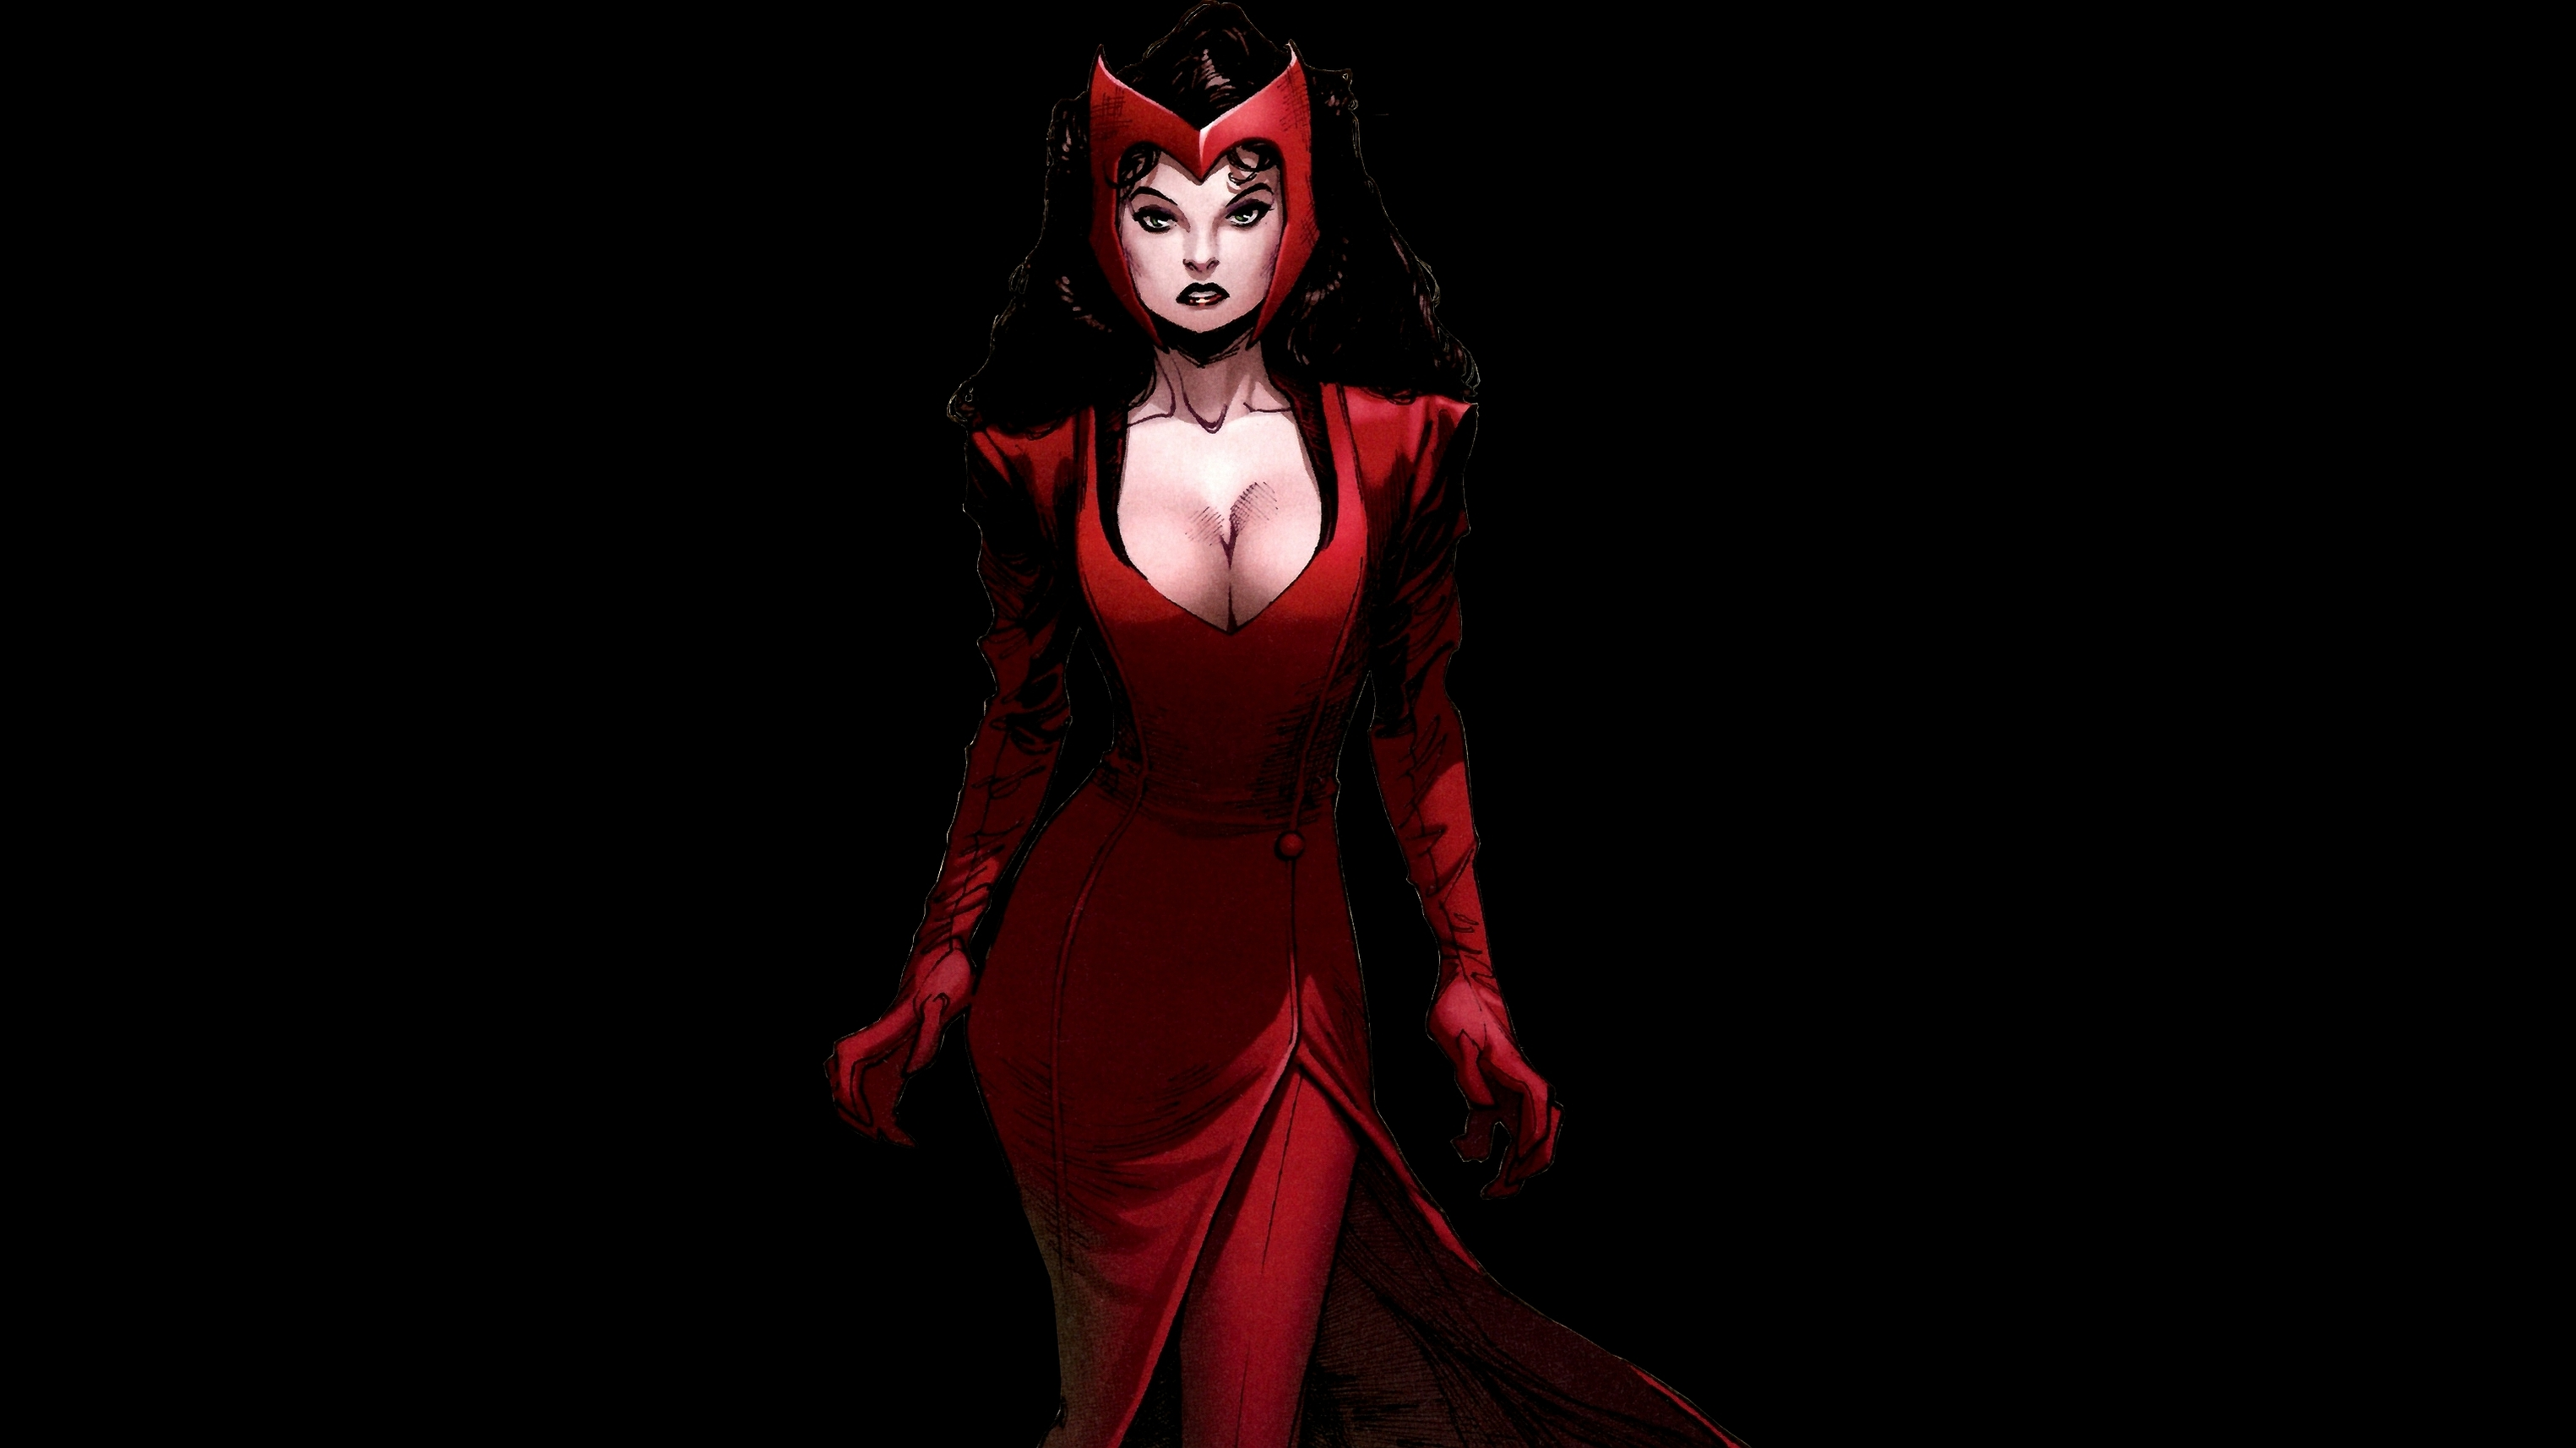 Scarlet Witch Full Hd Wallpaper And Background 3050x1715 HD Wallpapers Download Free Images Wallpaper [1000image.com]